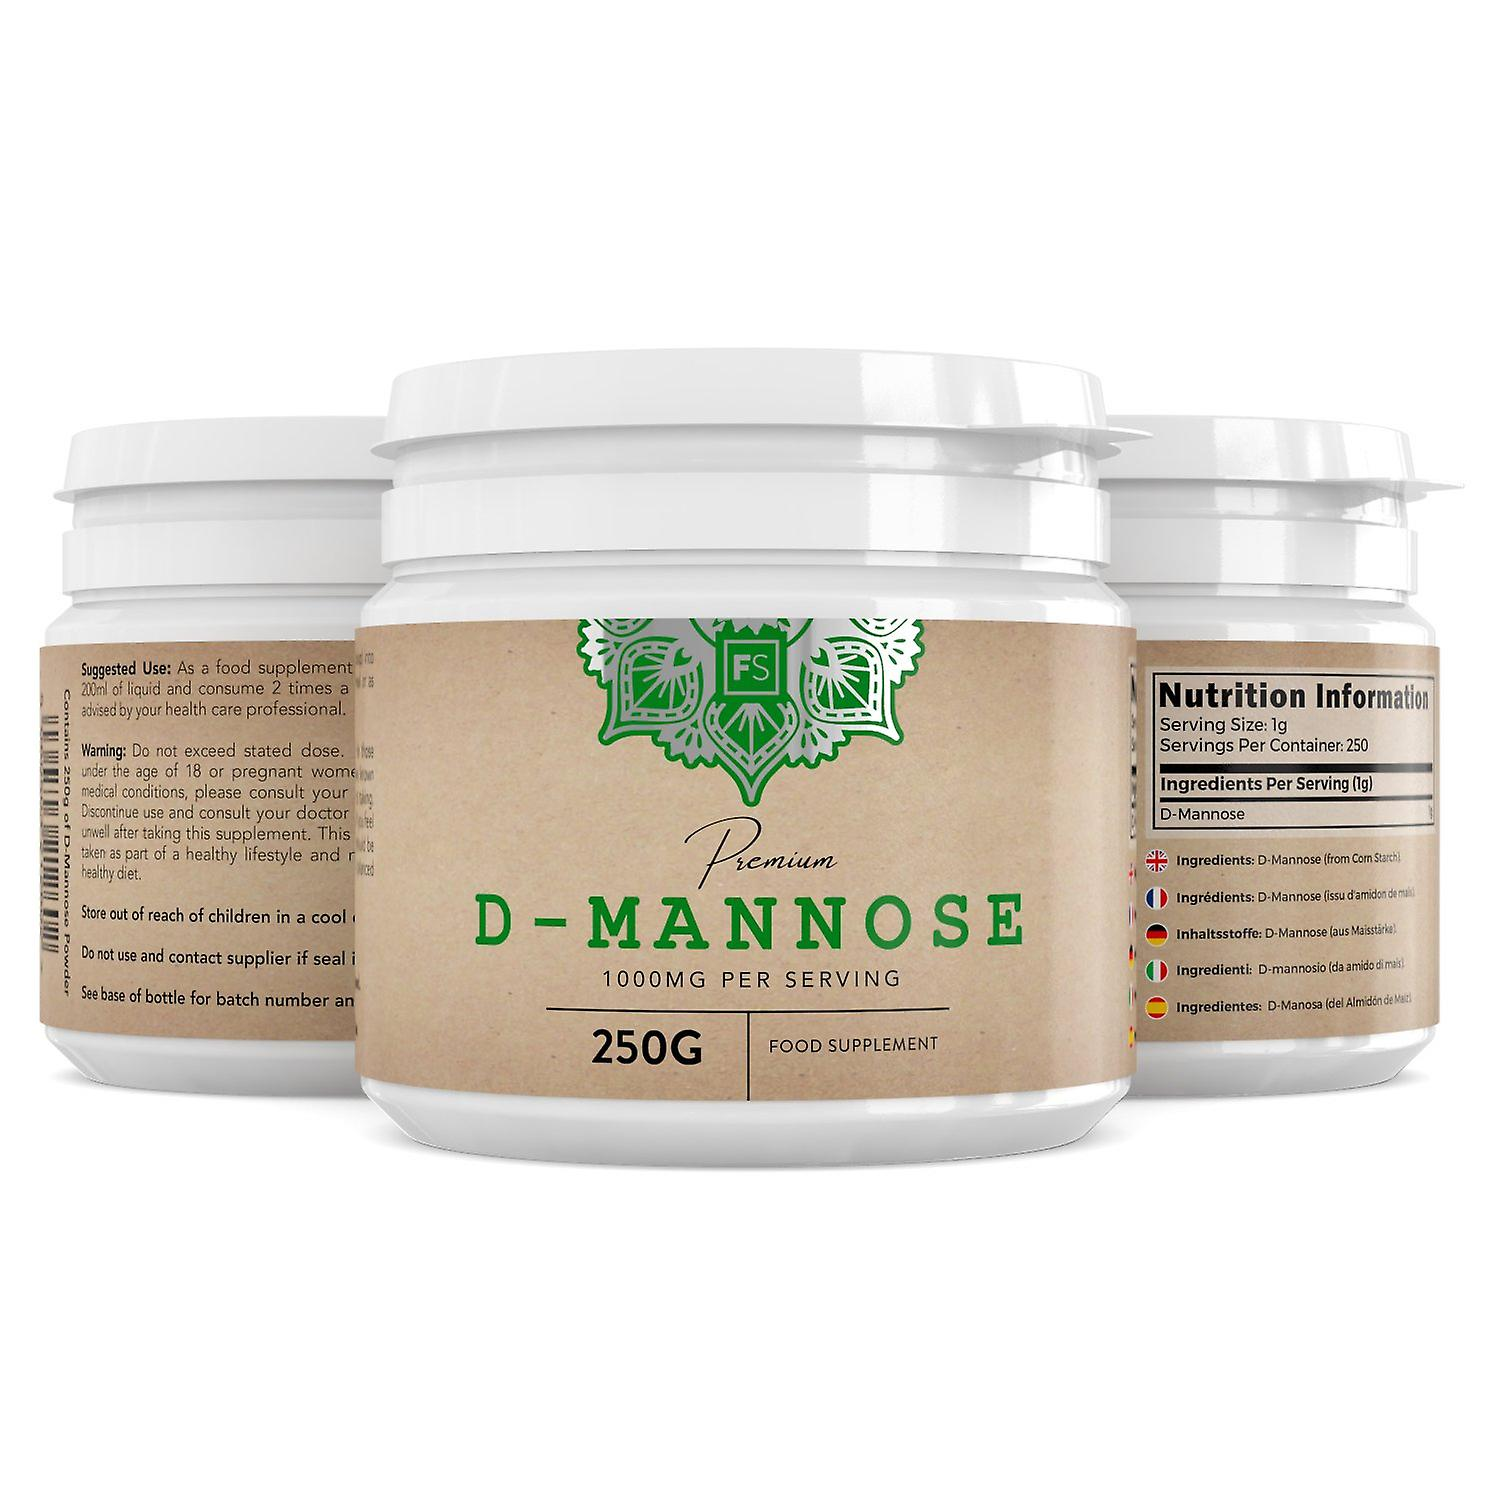 Focus Supplements D-Mannose Pure Powder